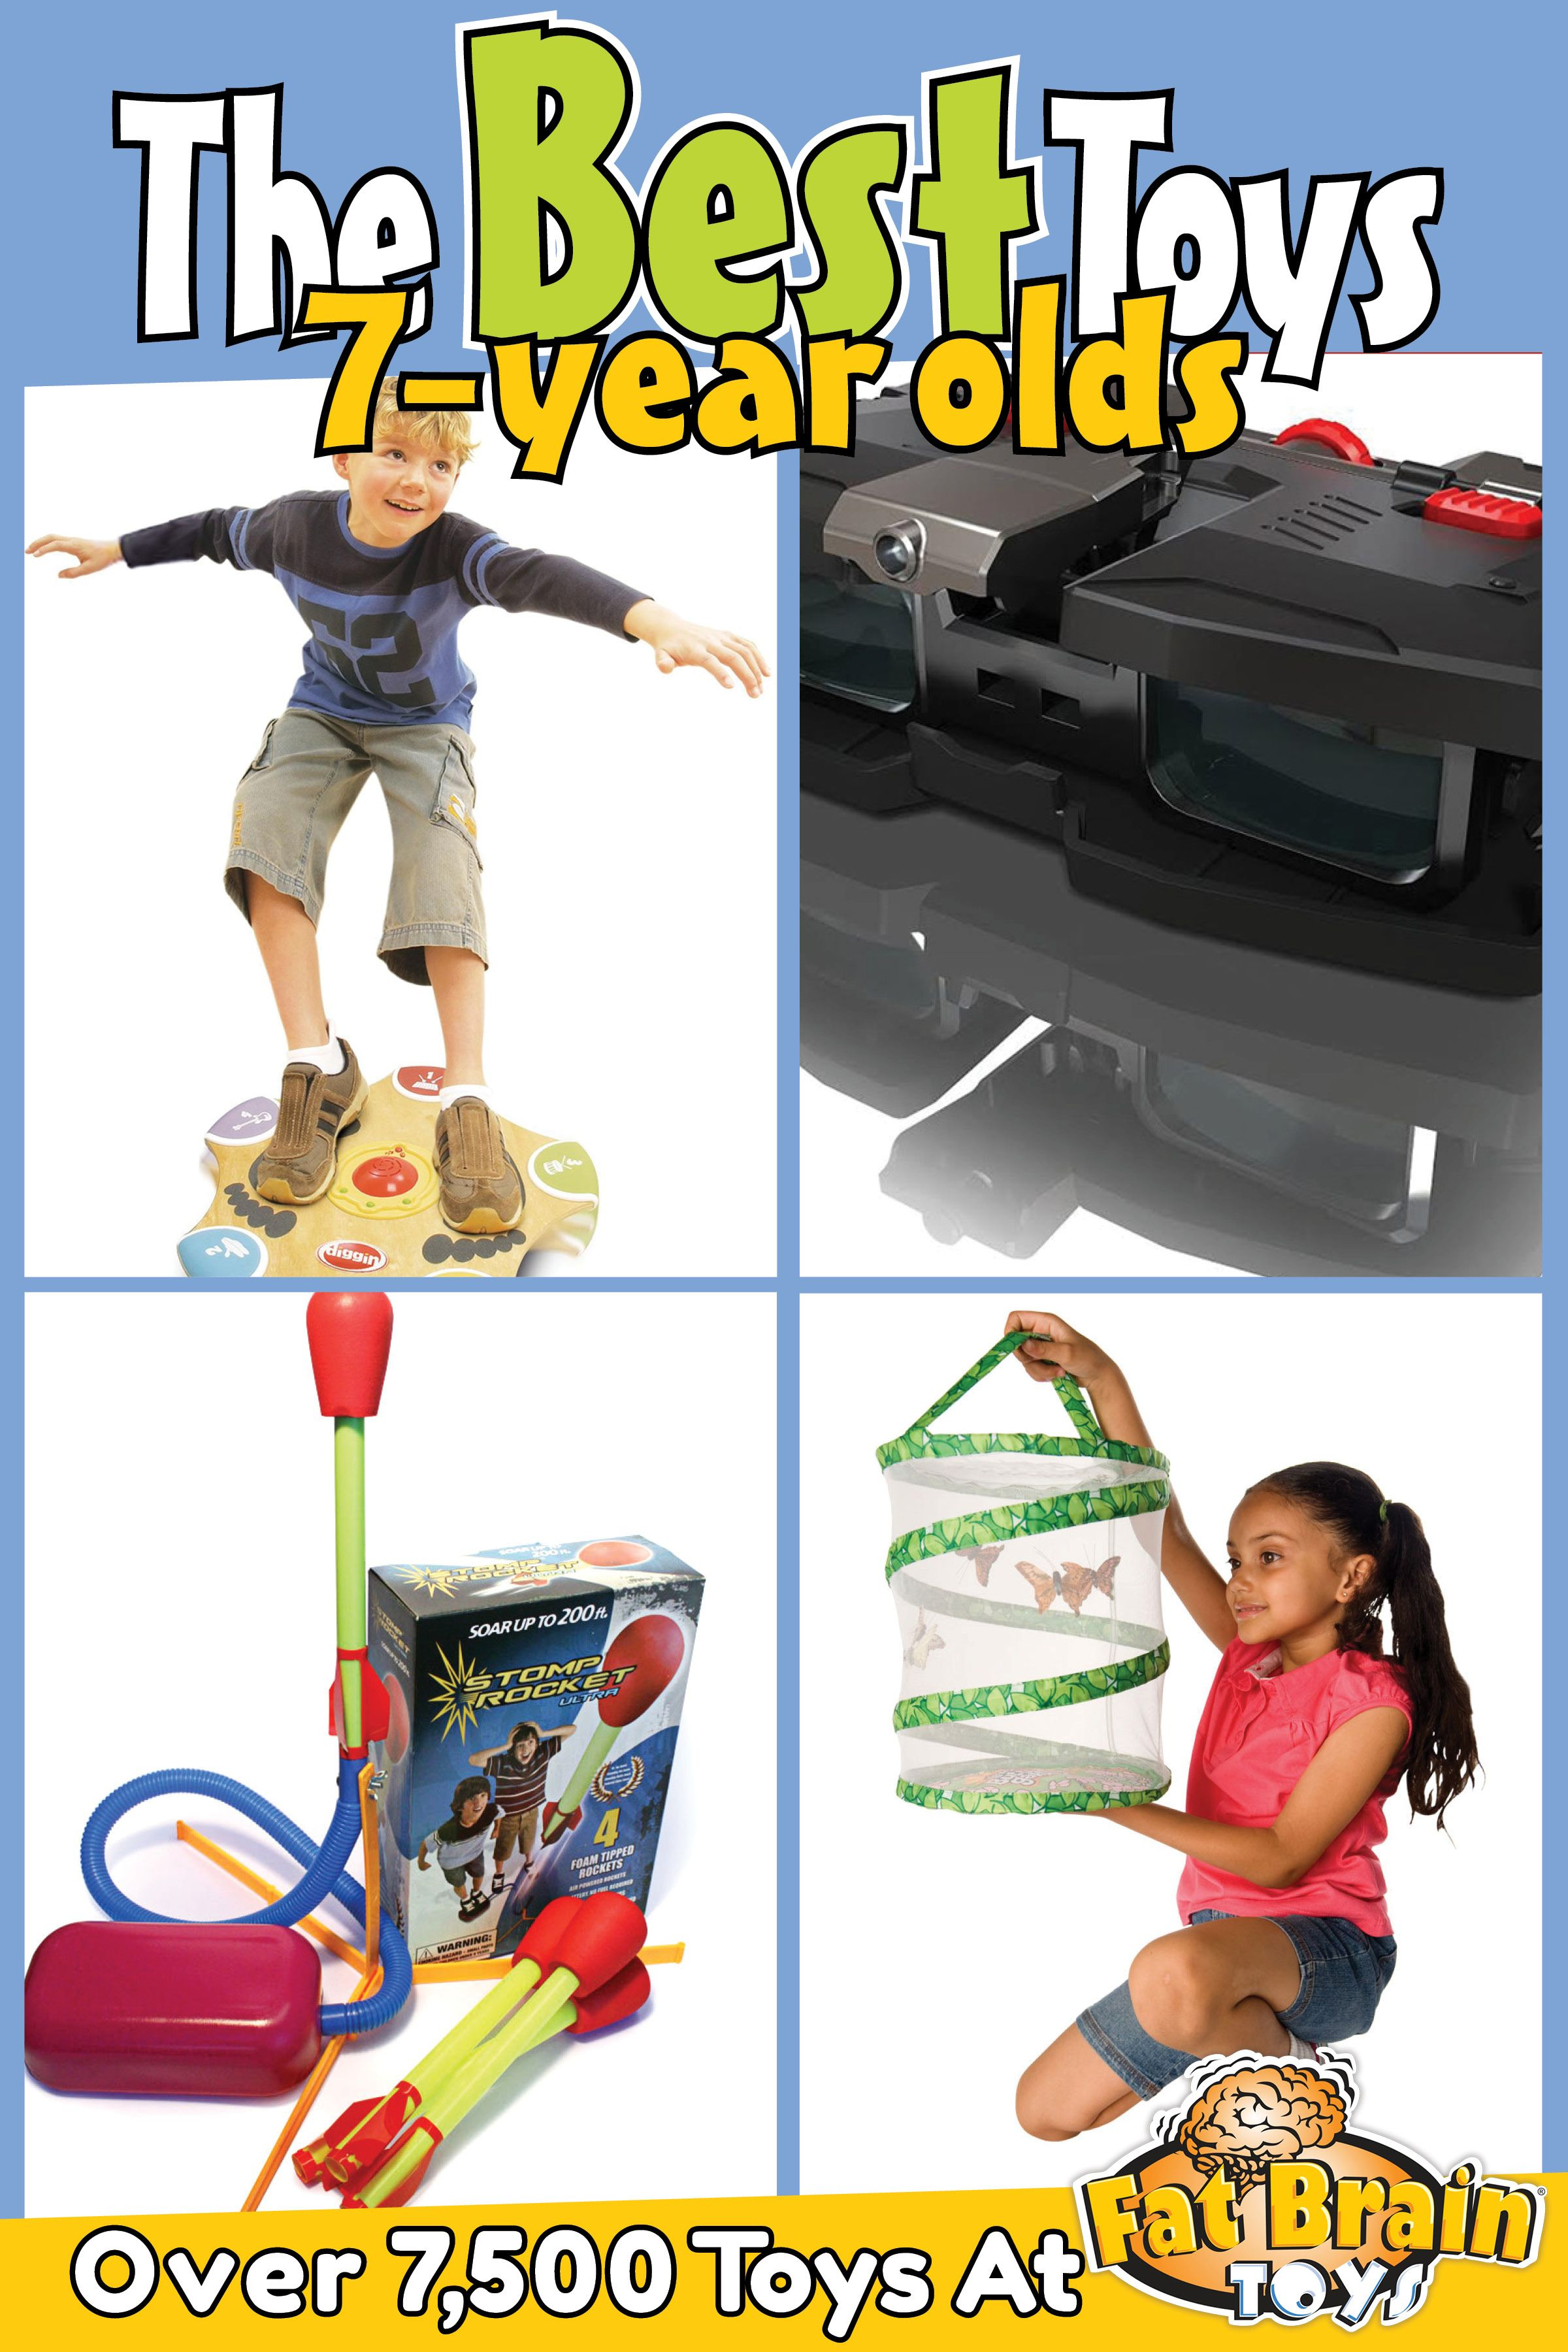 The Best Toys Games And Gifts On The Planet For 7 Year Olds From